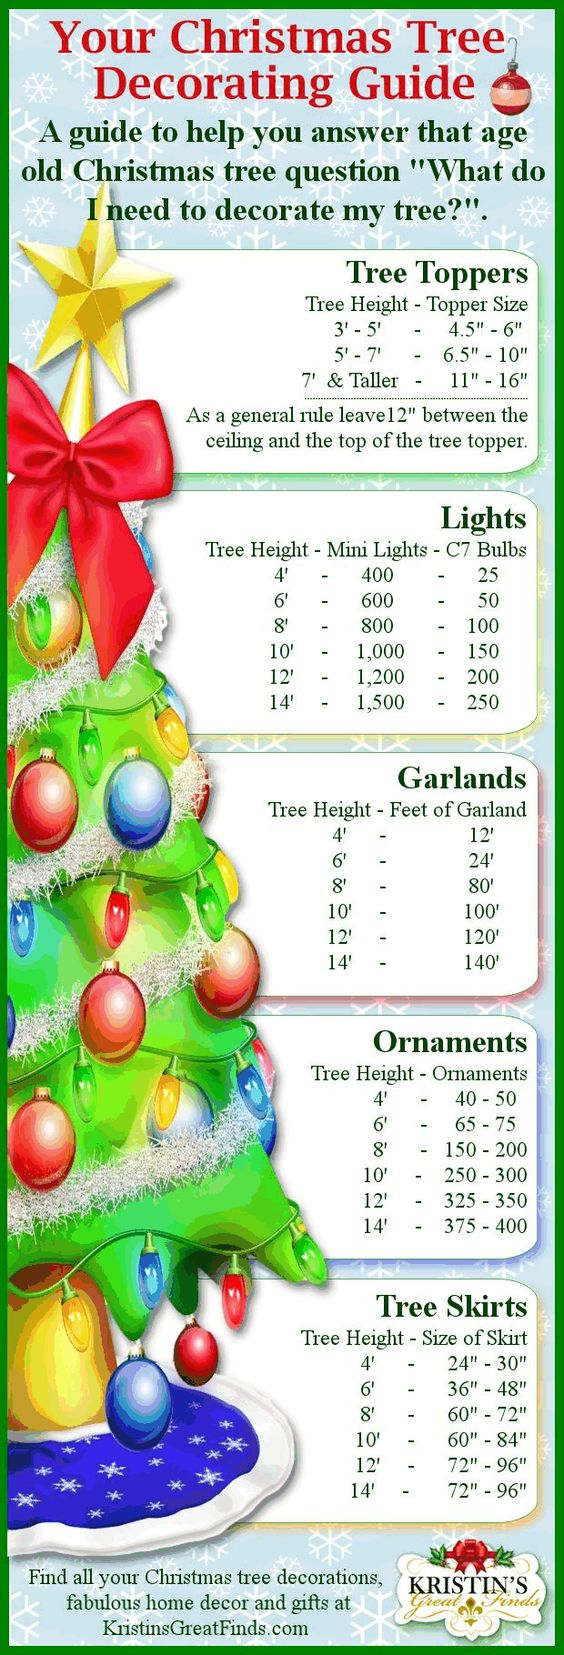 Do you know how many lights are needed for your 7 foot tall Christmas tree? What size tree skirt is recommended for a Christmas tree that is 8 feet tall? These and more questions are answered in our Christmas Tree Decorating Guide. You can buy everything you need to decorate your tree (except the lights) in our store at Kristin's Great Finds.: